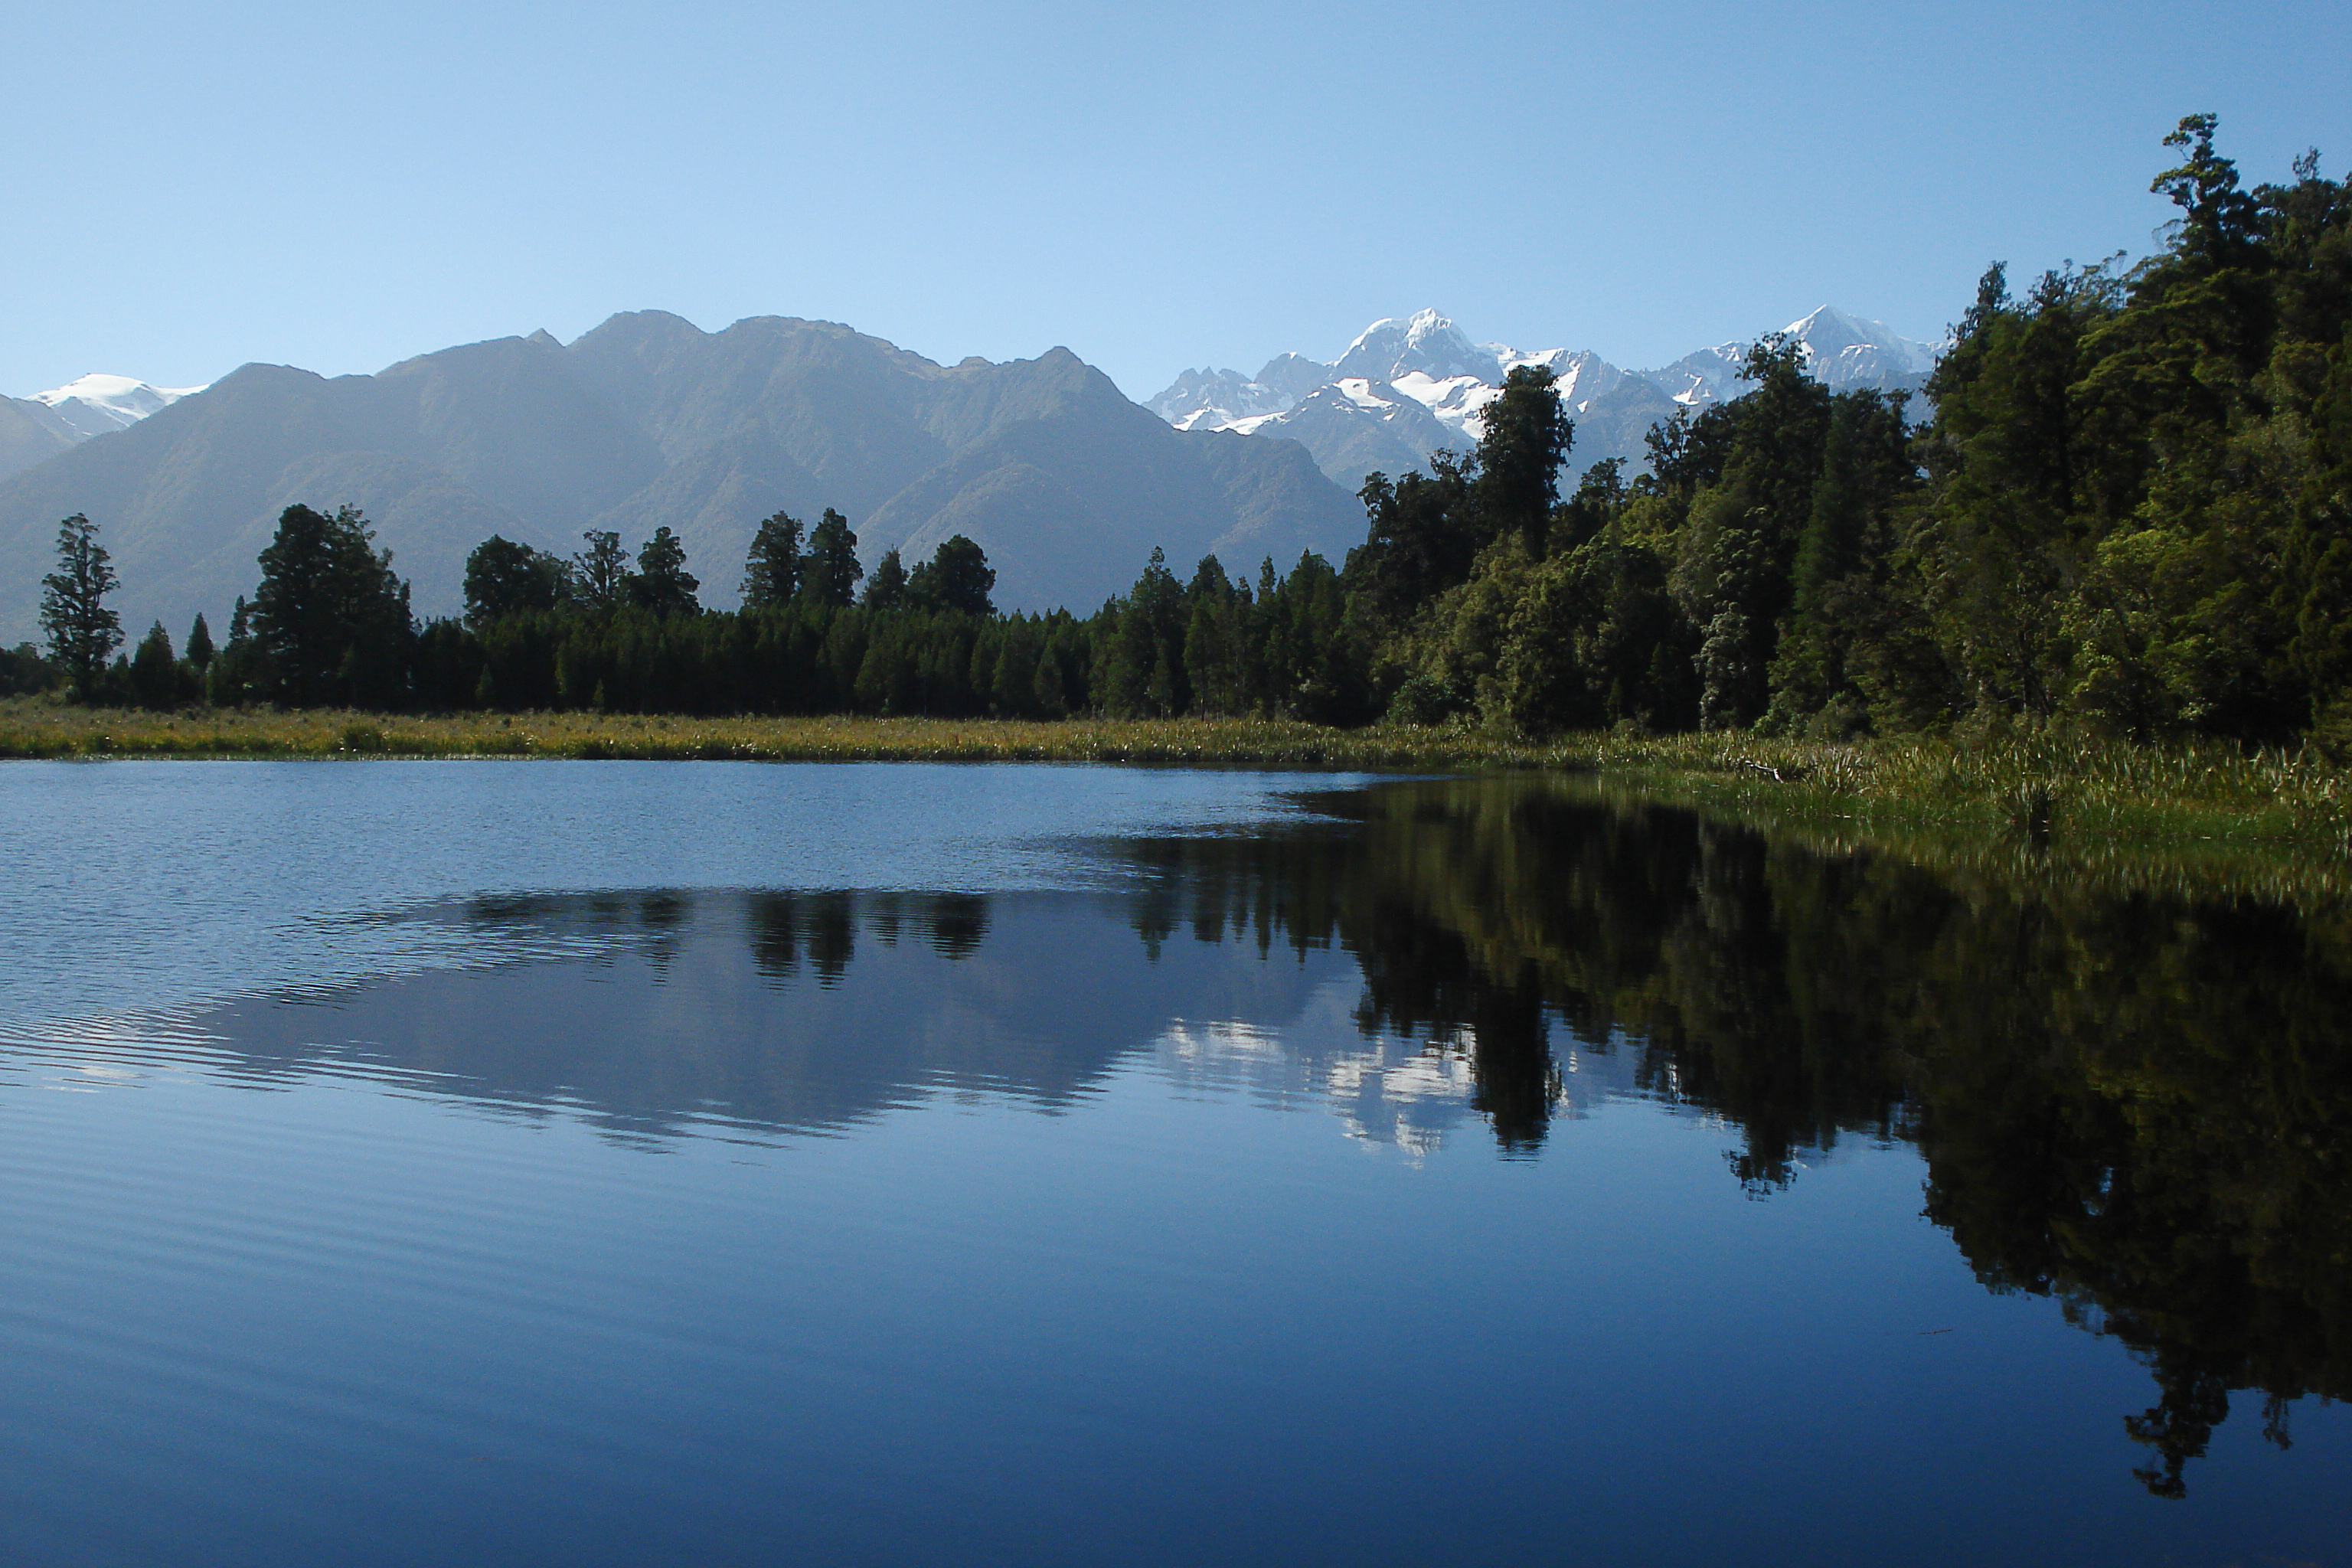 The Southern Alps reflected in Lake Matheson.